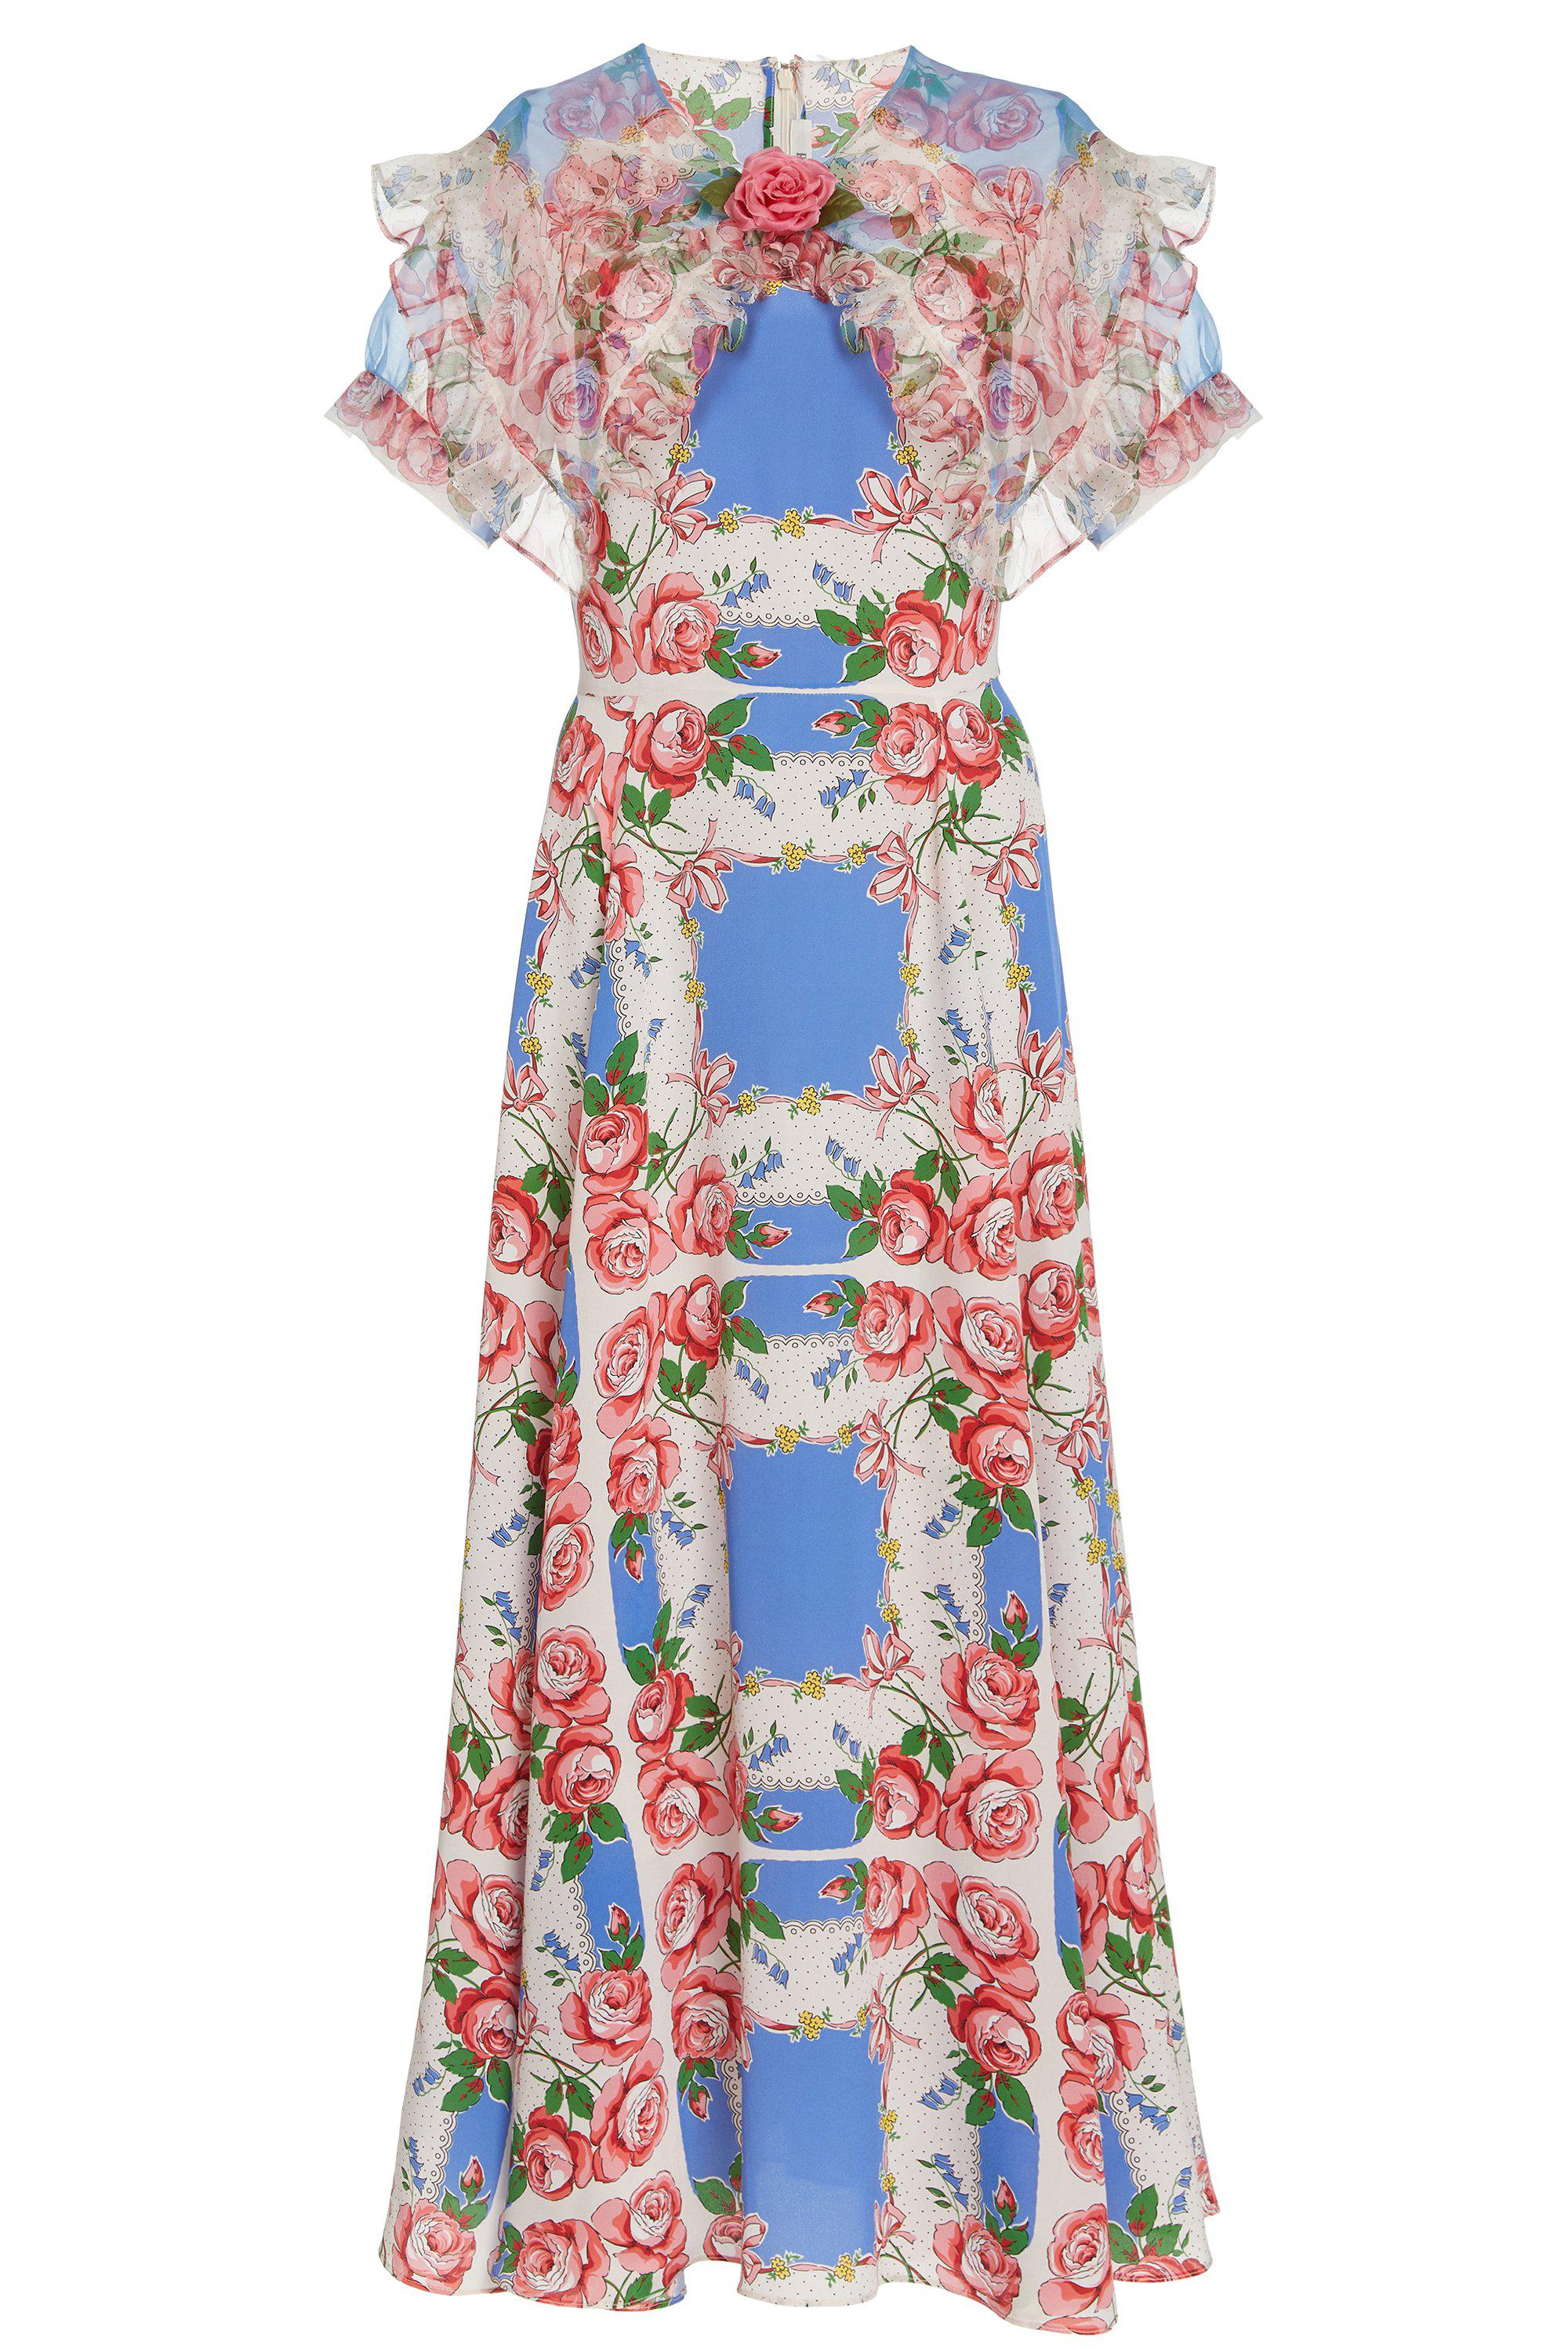 FLORAL PRINTED SILK DRESS WITH RUFFLE COLLAR 4